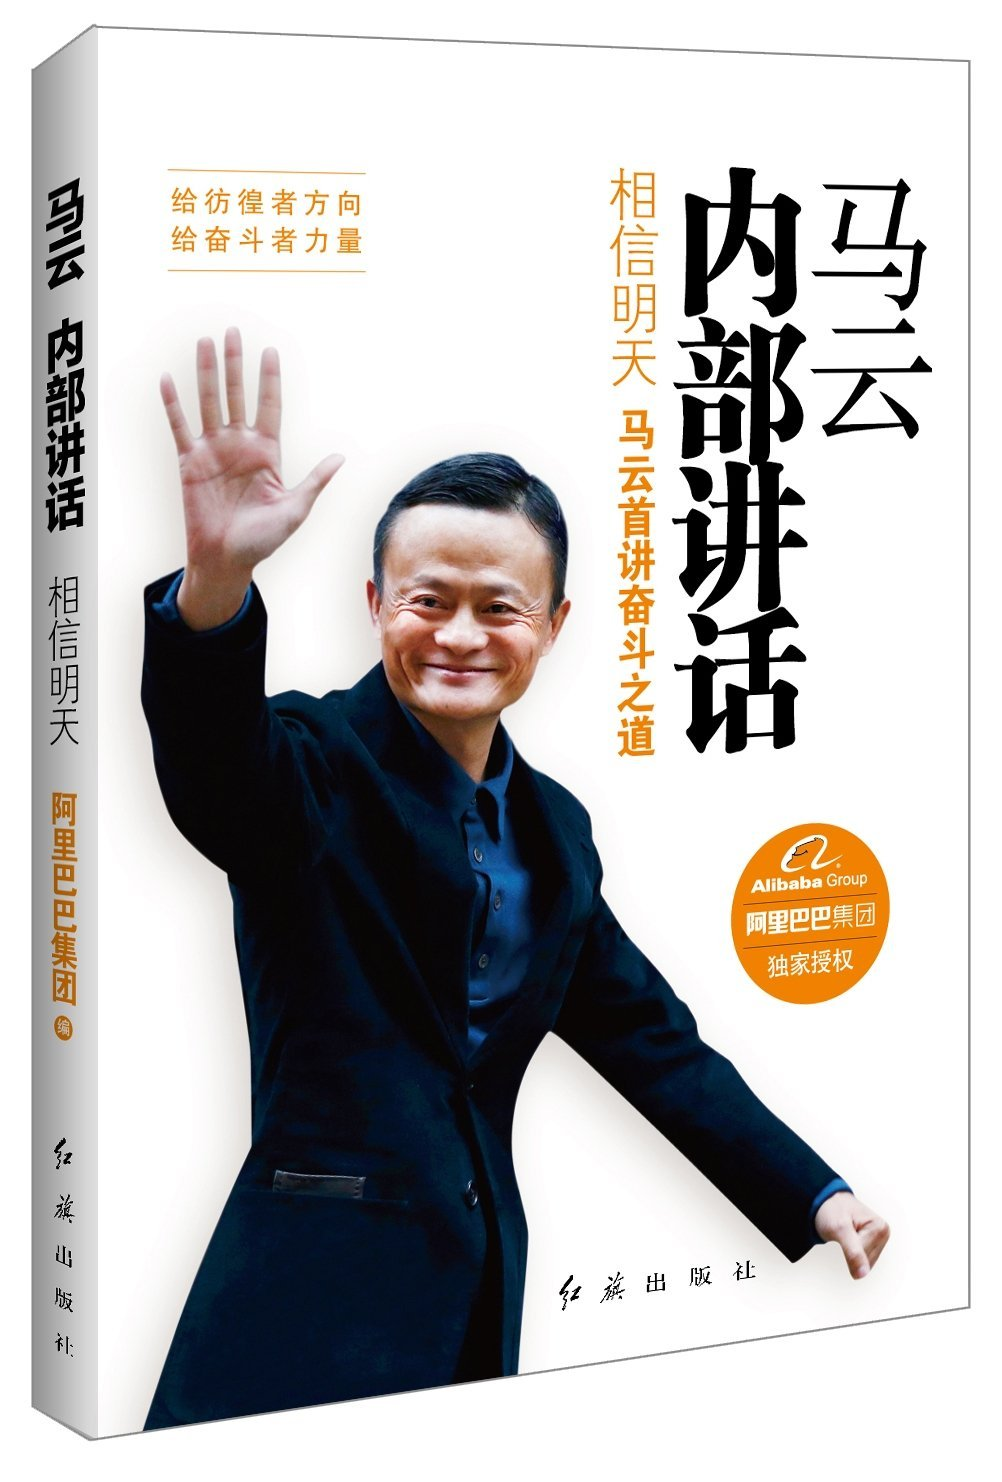 Ma Yuns Internal Speeches: Believe in Future (Chinese Edition) pdf epub